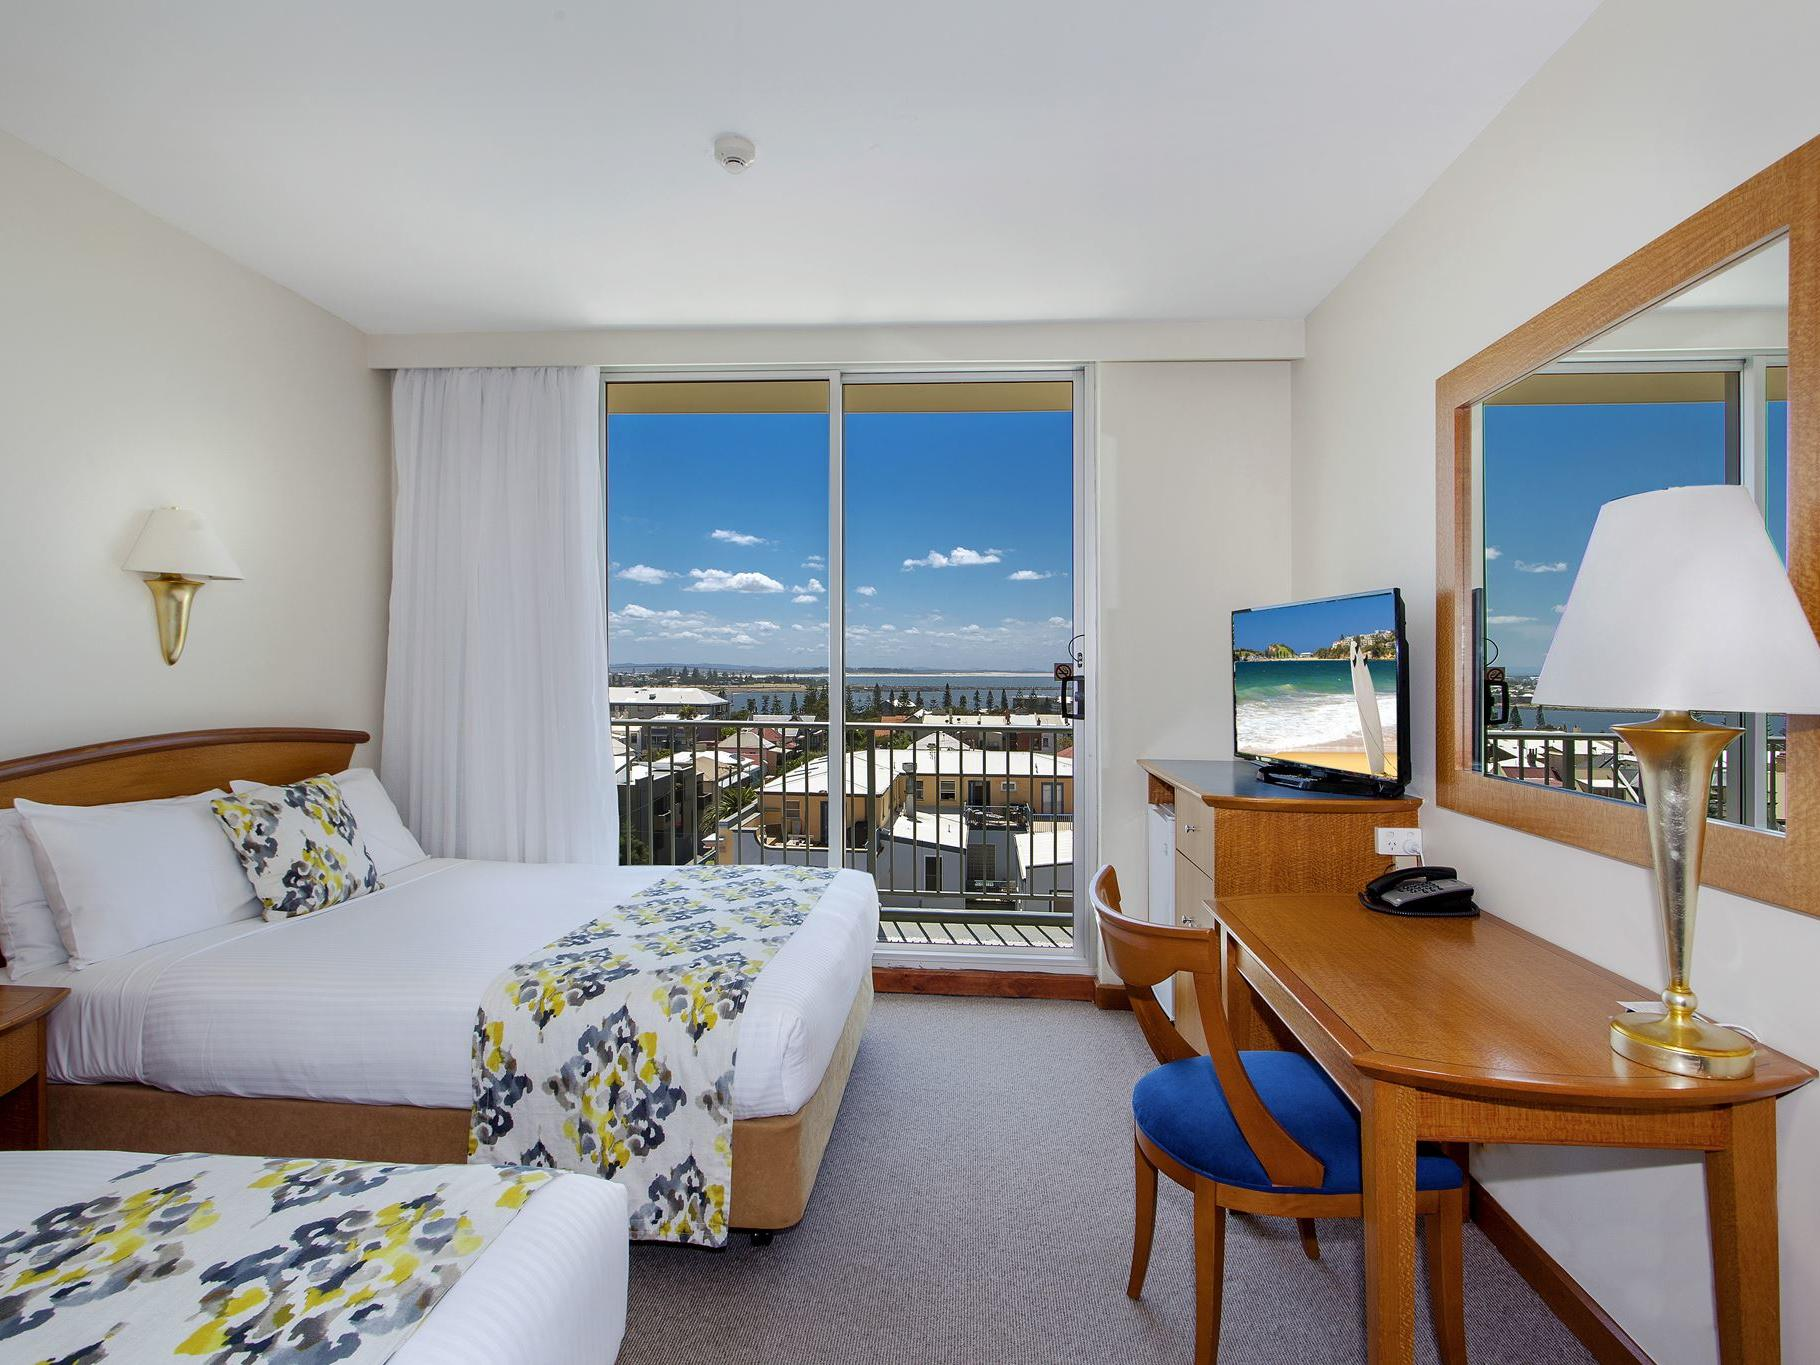 Hotel room with balcony, TV and vanity area